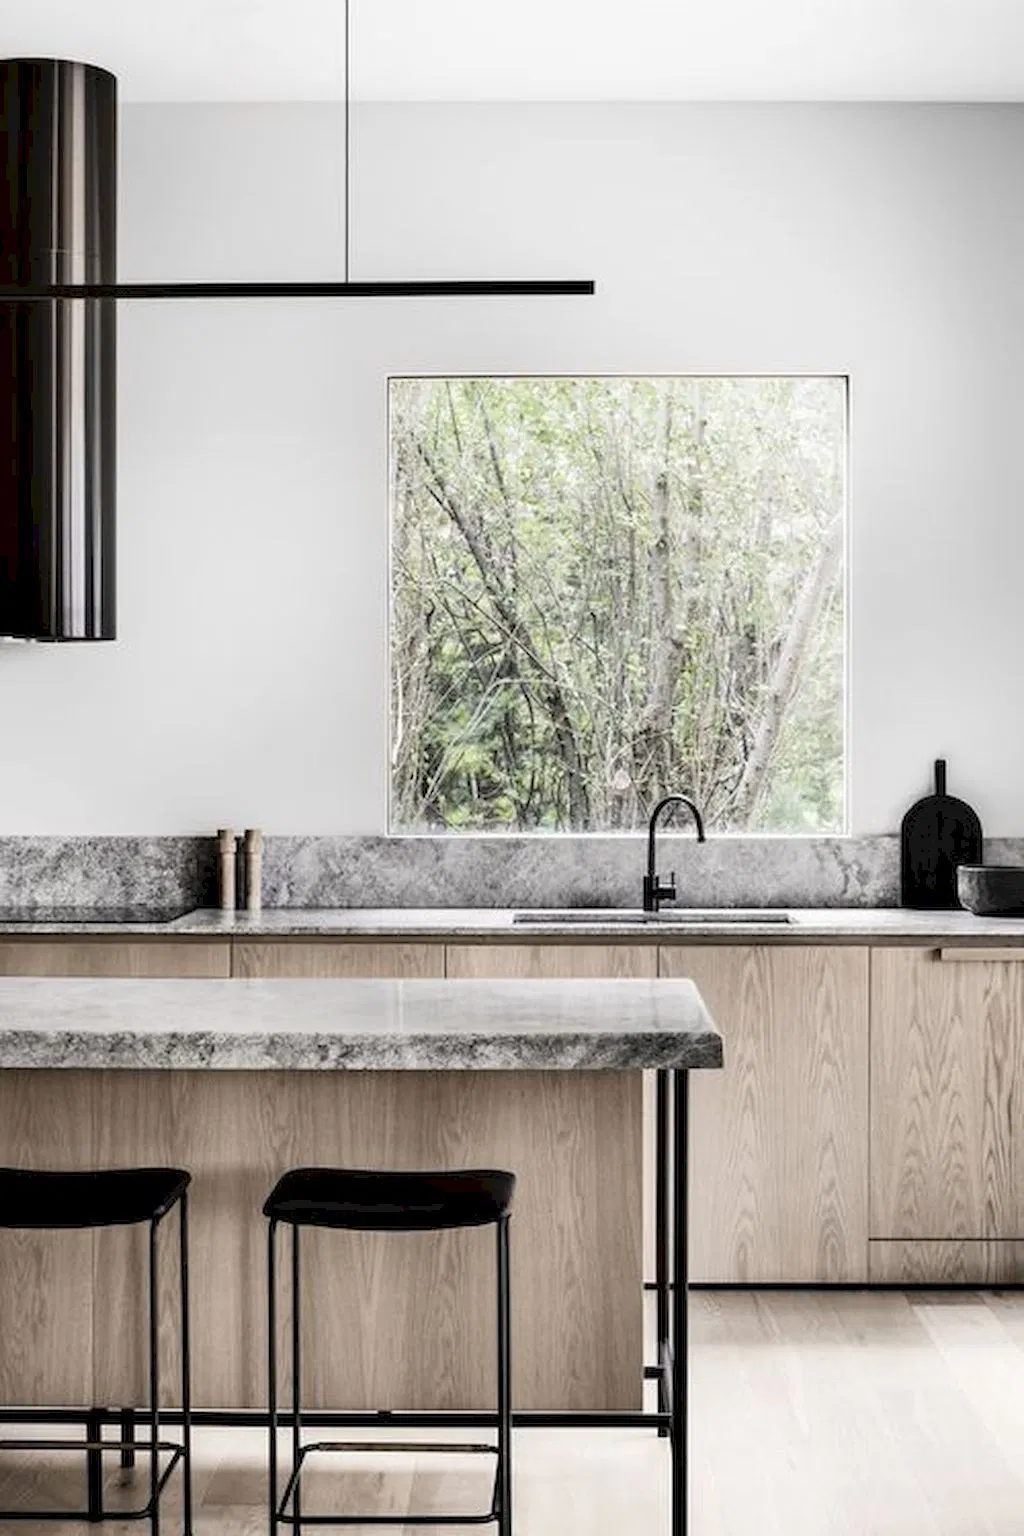 neutral color minimalist kitchen with marble countertops and backsplash, black bar stools and large window